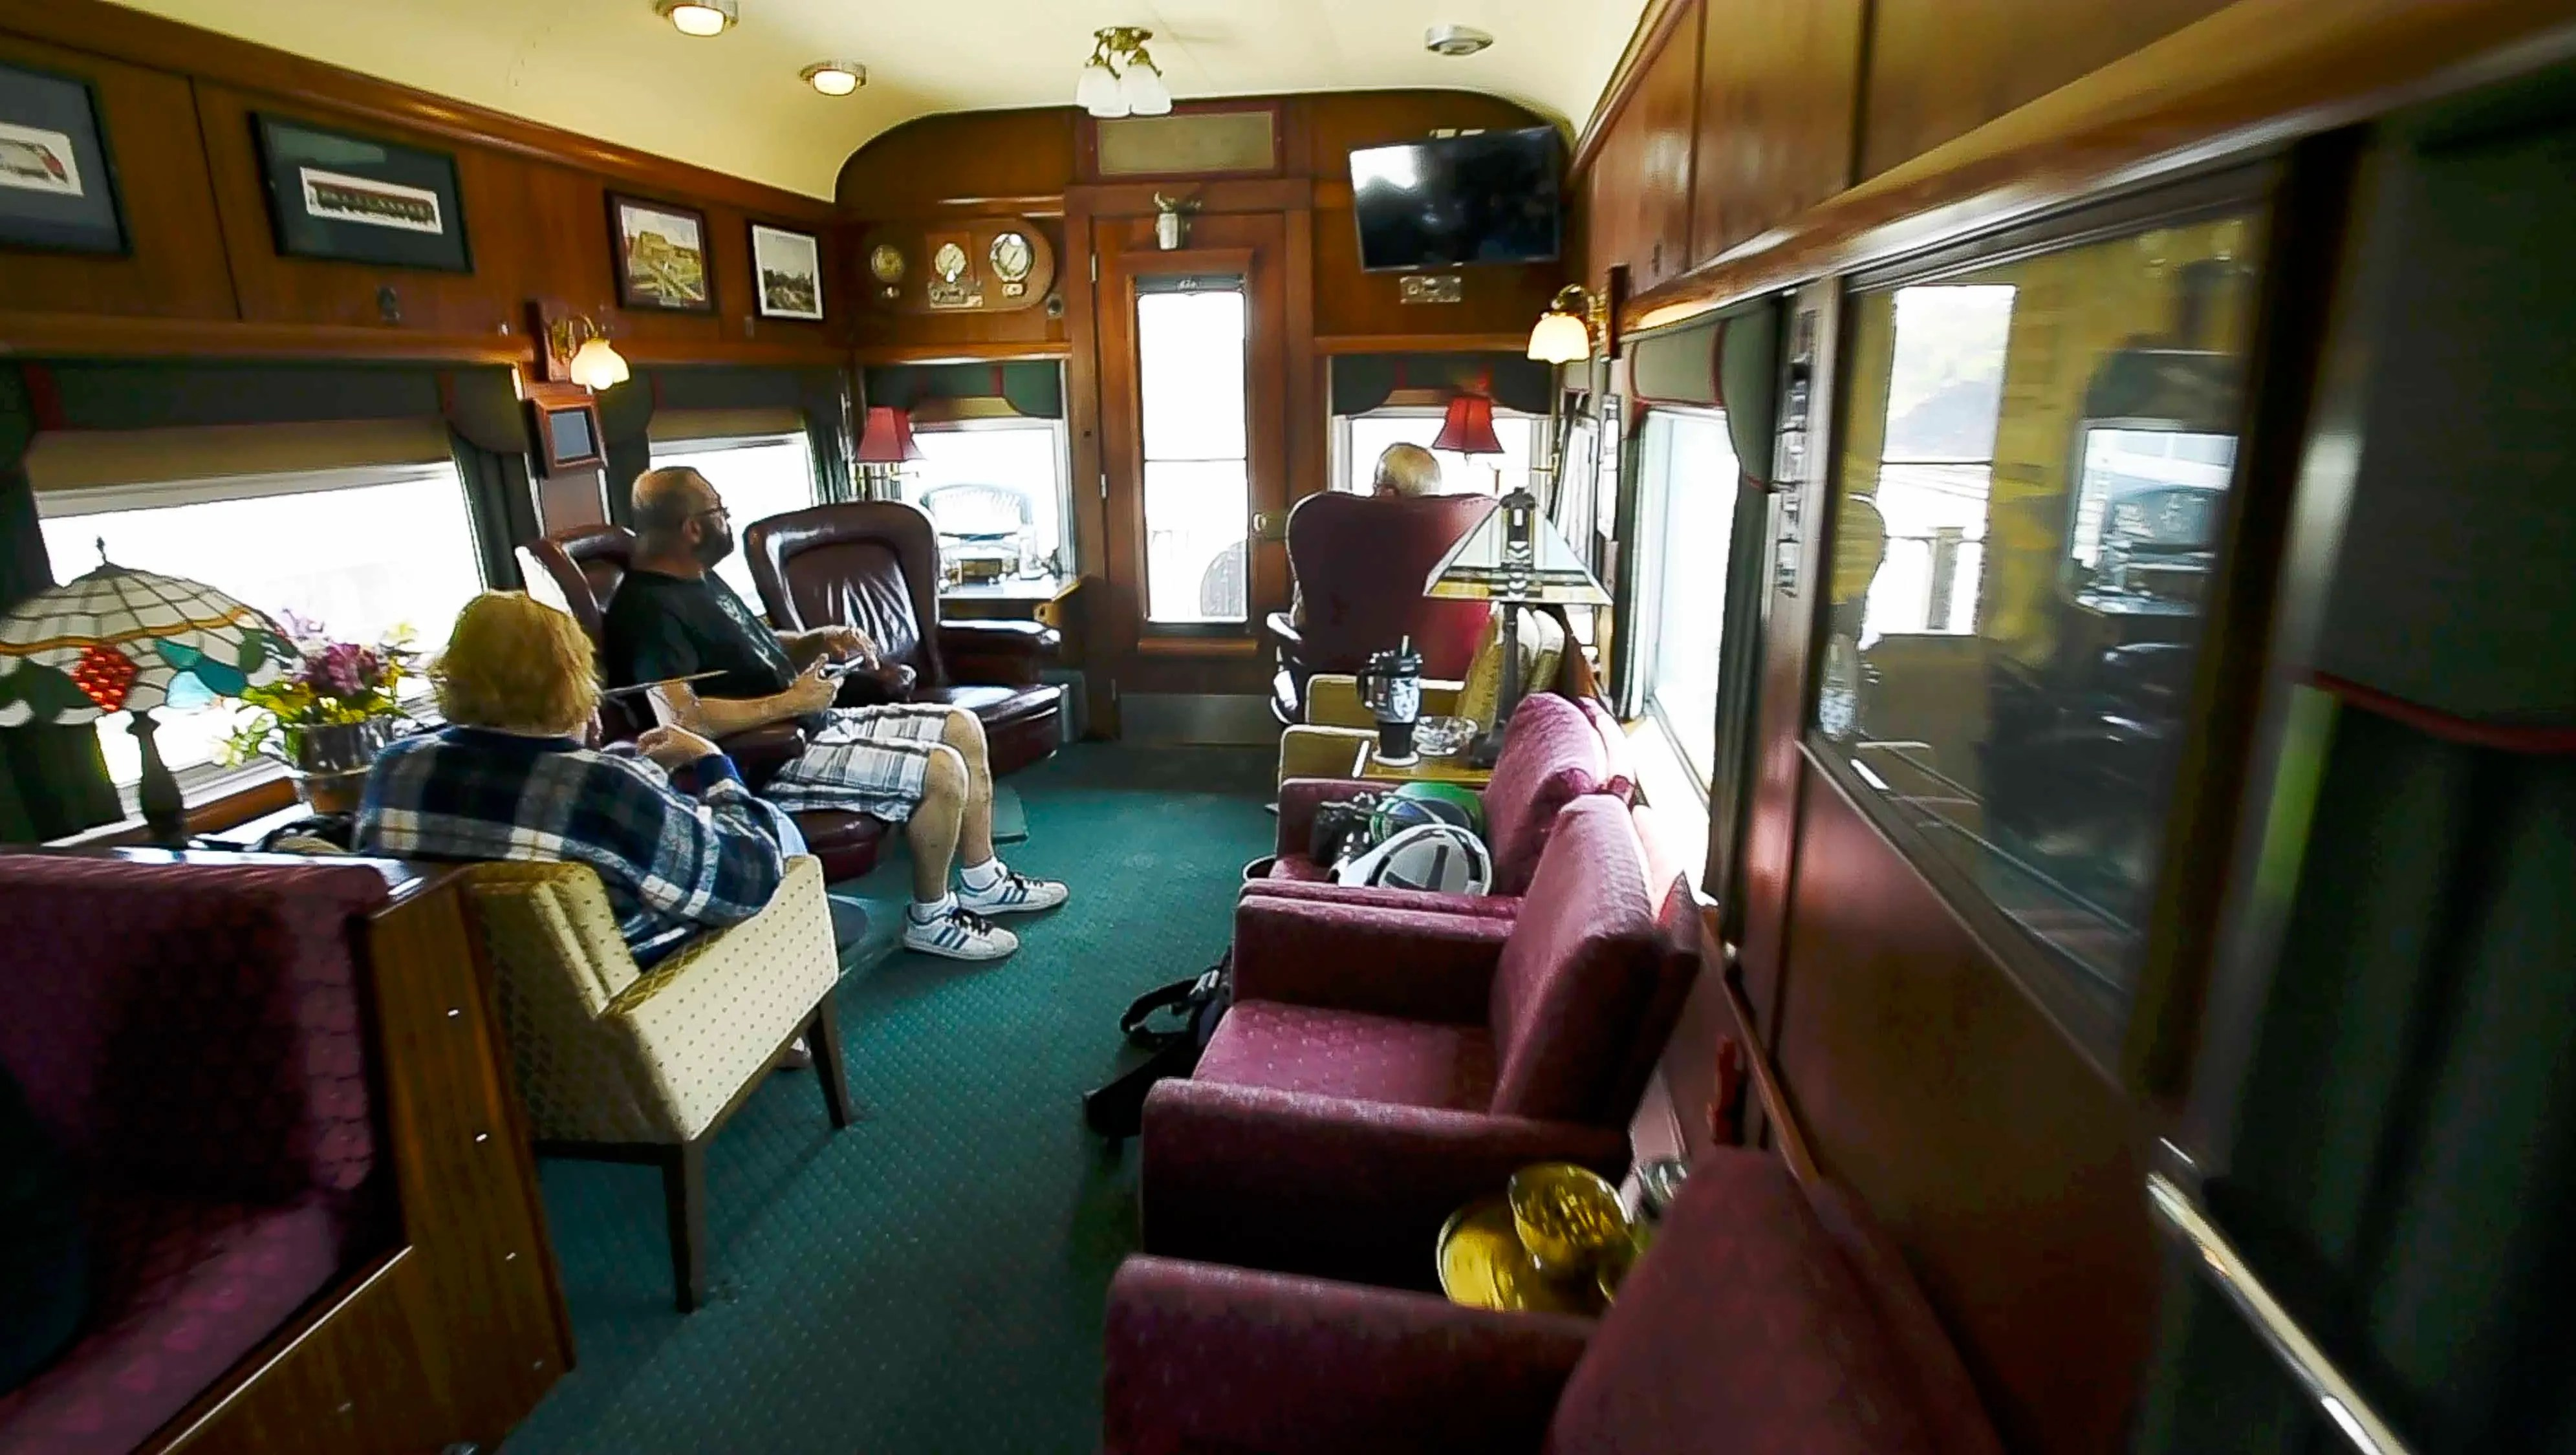 sedan chair rental custom rocking chairs private train cars a look inside these ritzy digs